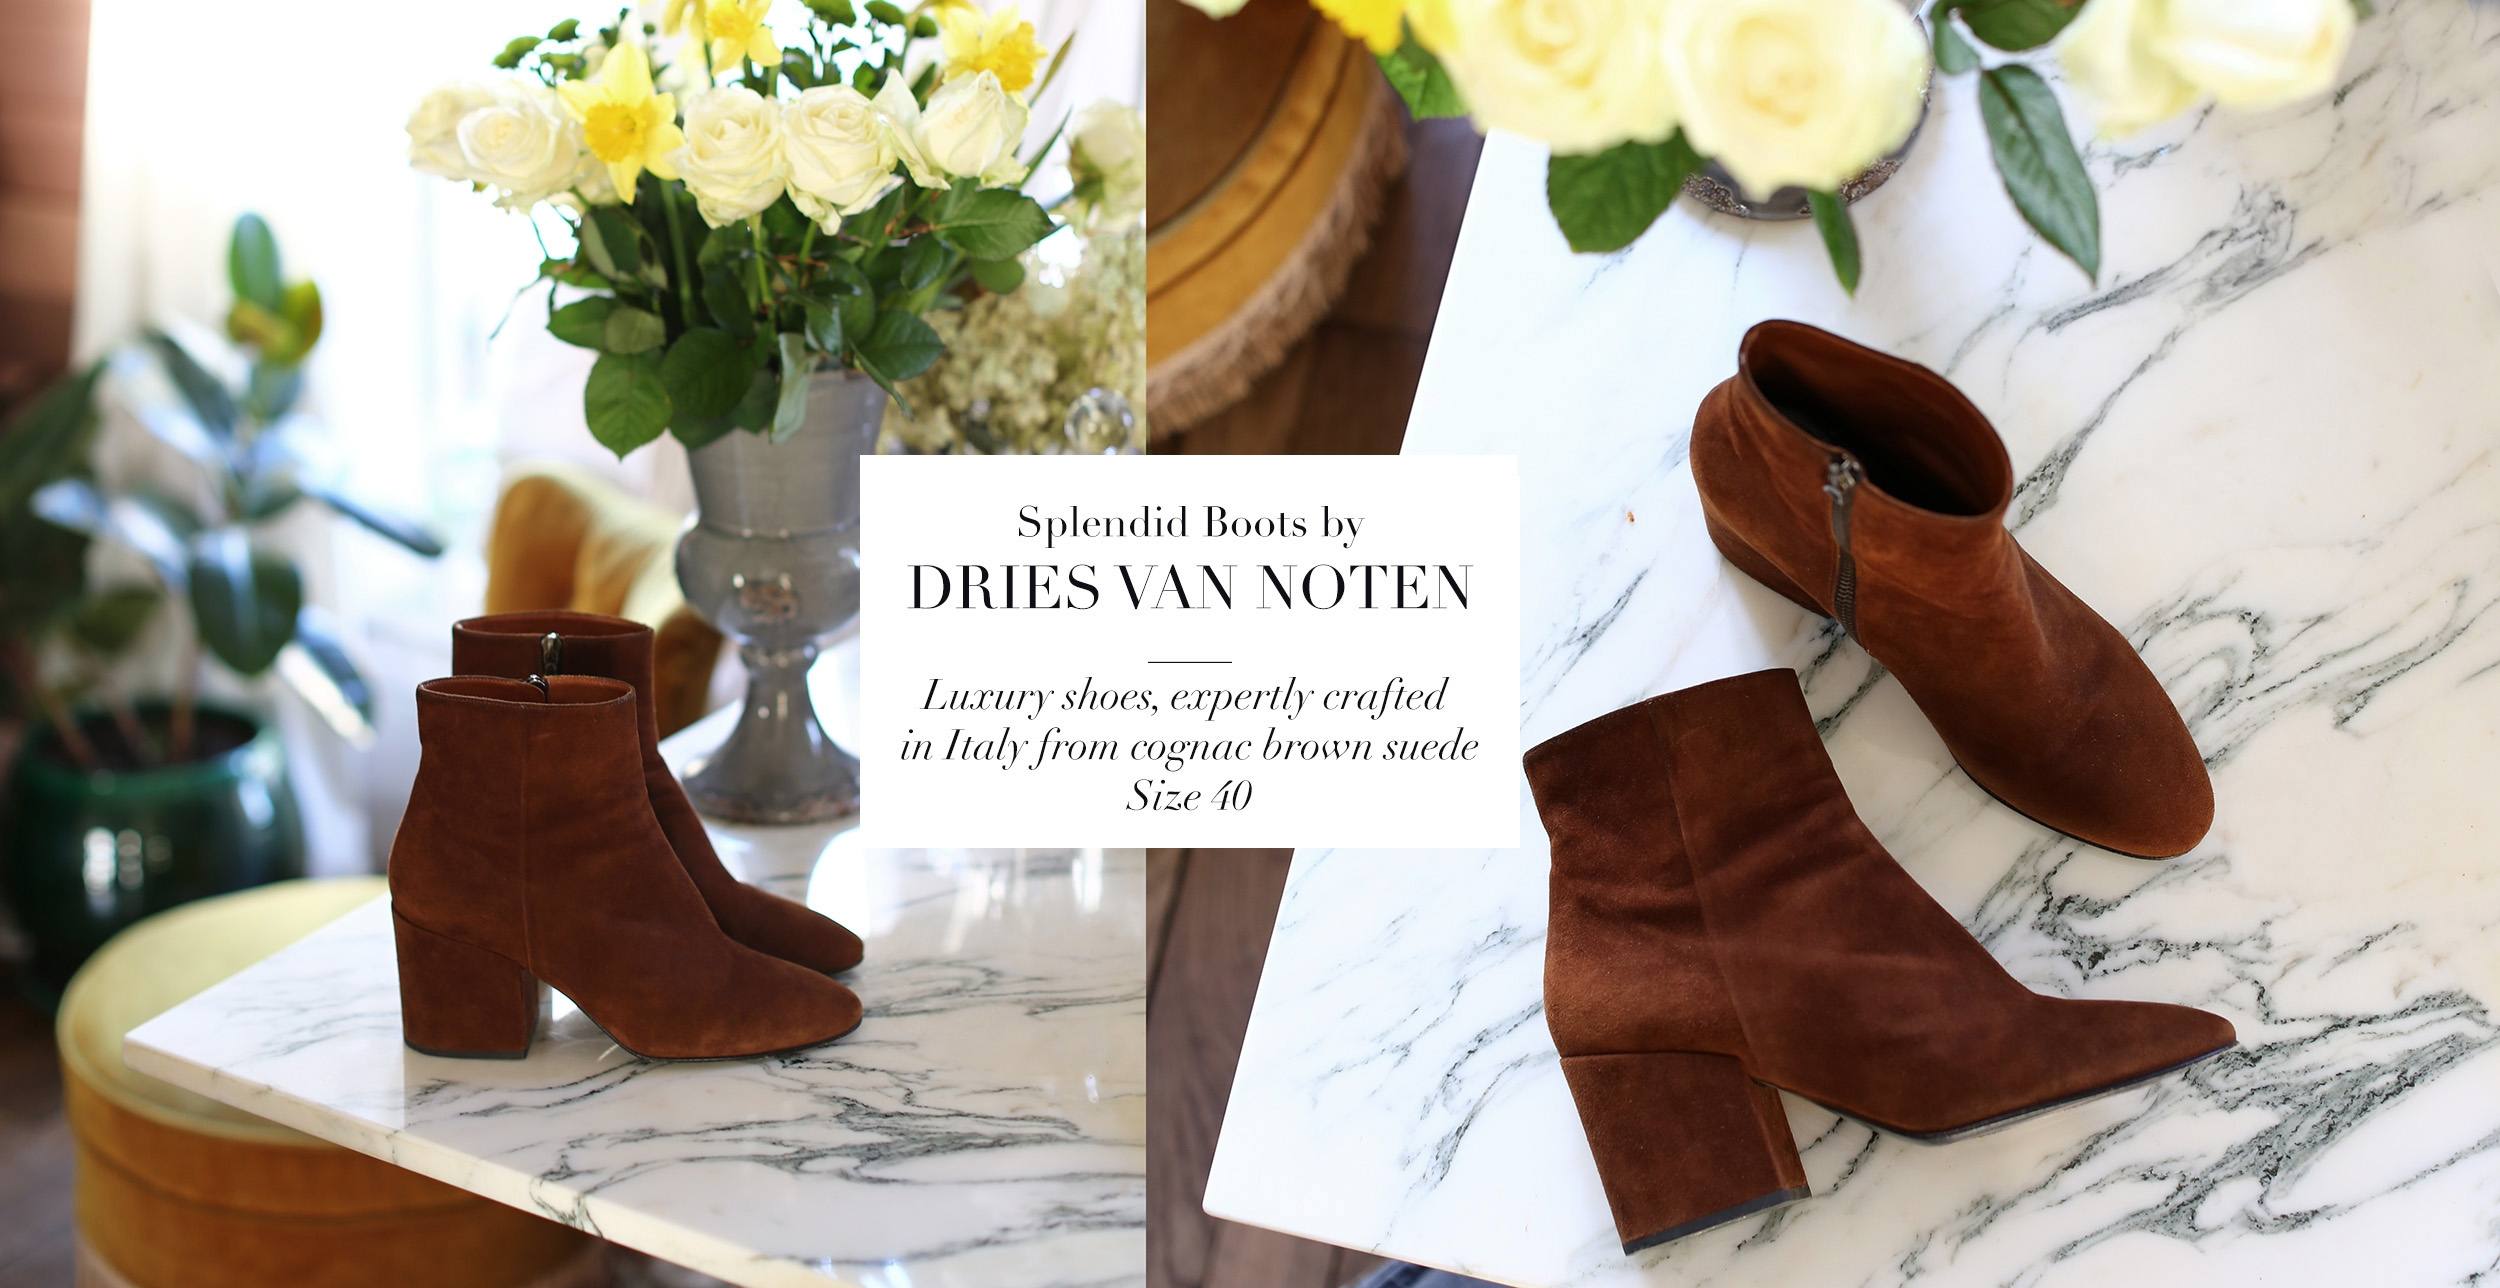 DRIES VAN NOTEN Brown suede leather and block heel ankle boots Retail price €630 Size 40